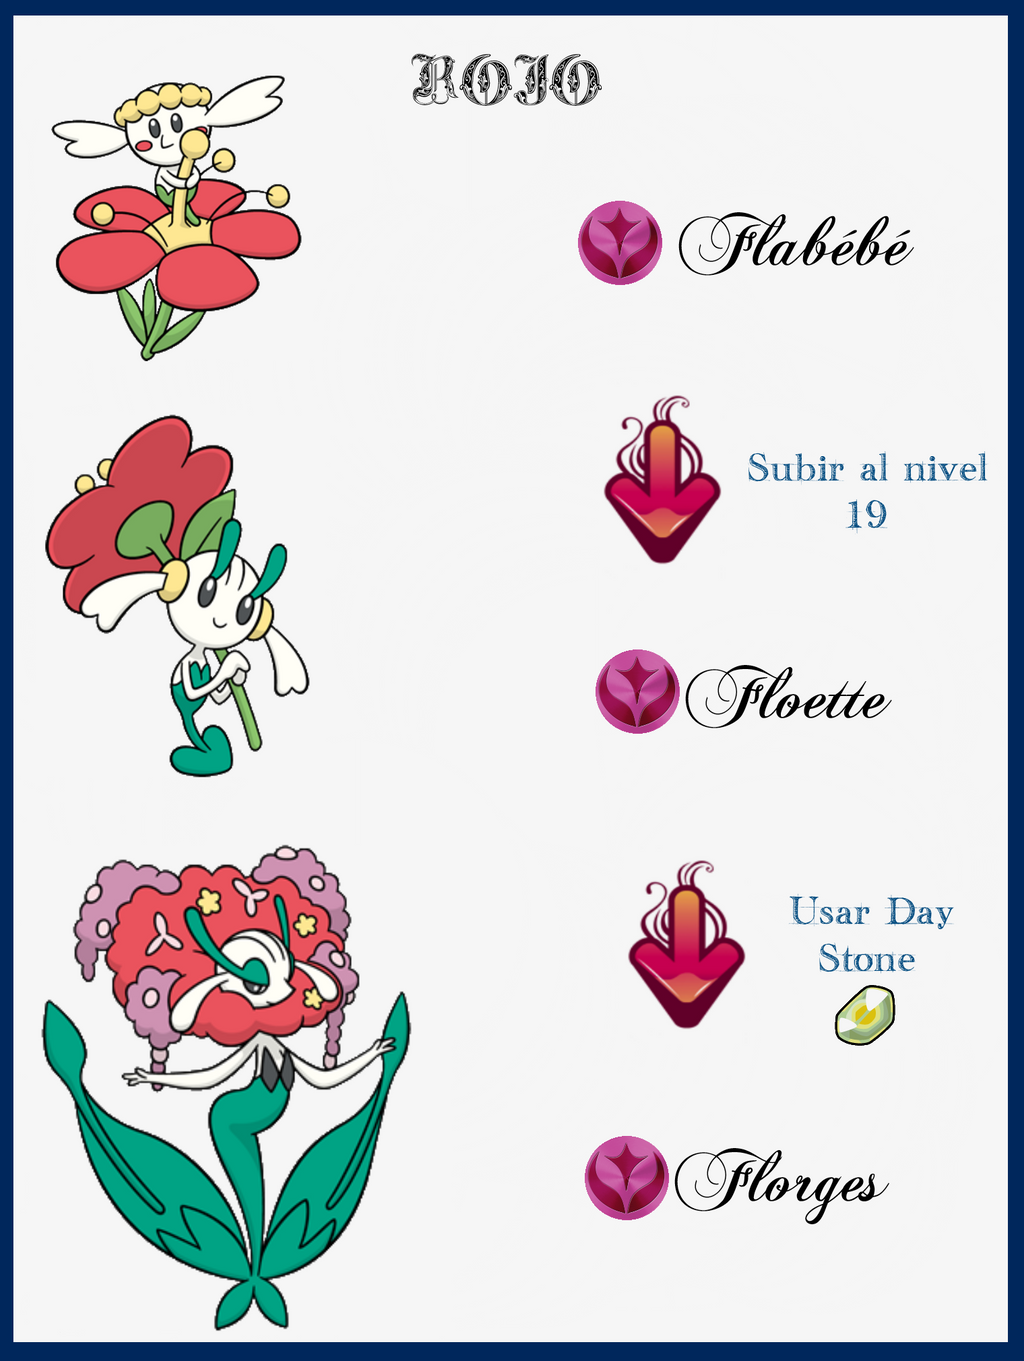 289 Flabebe Evoluciones by Maxconnery on DeviantArt